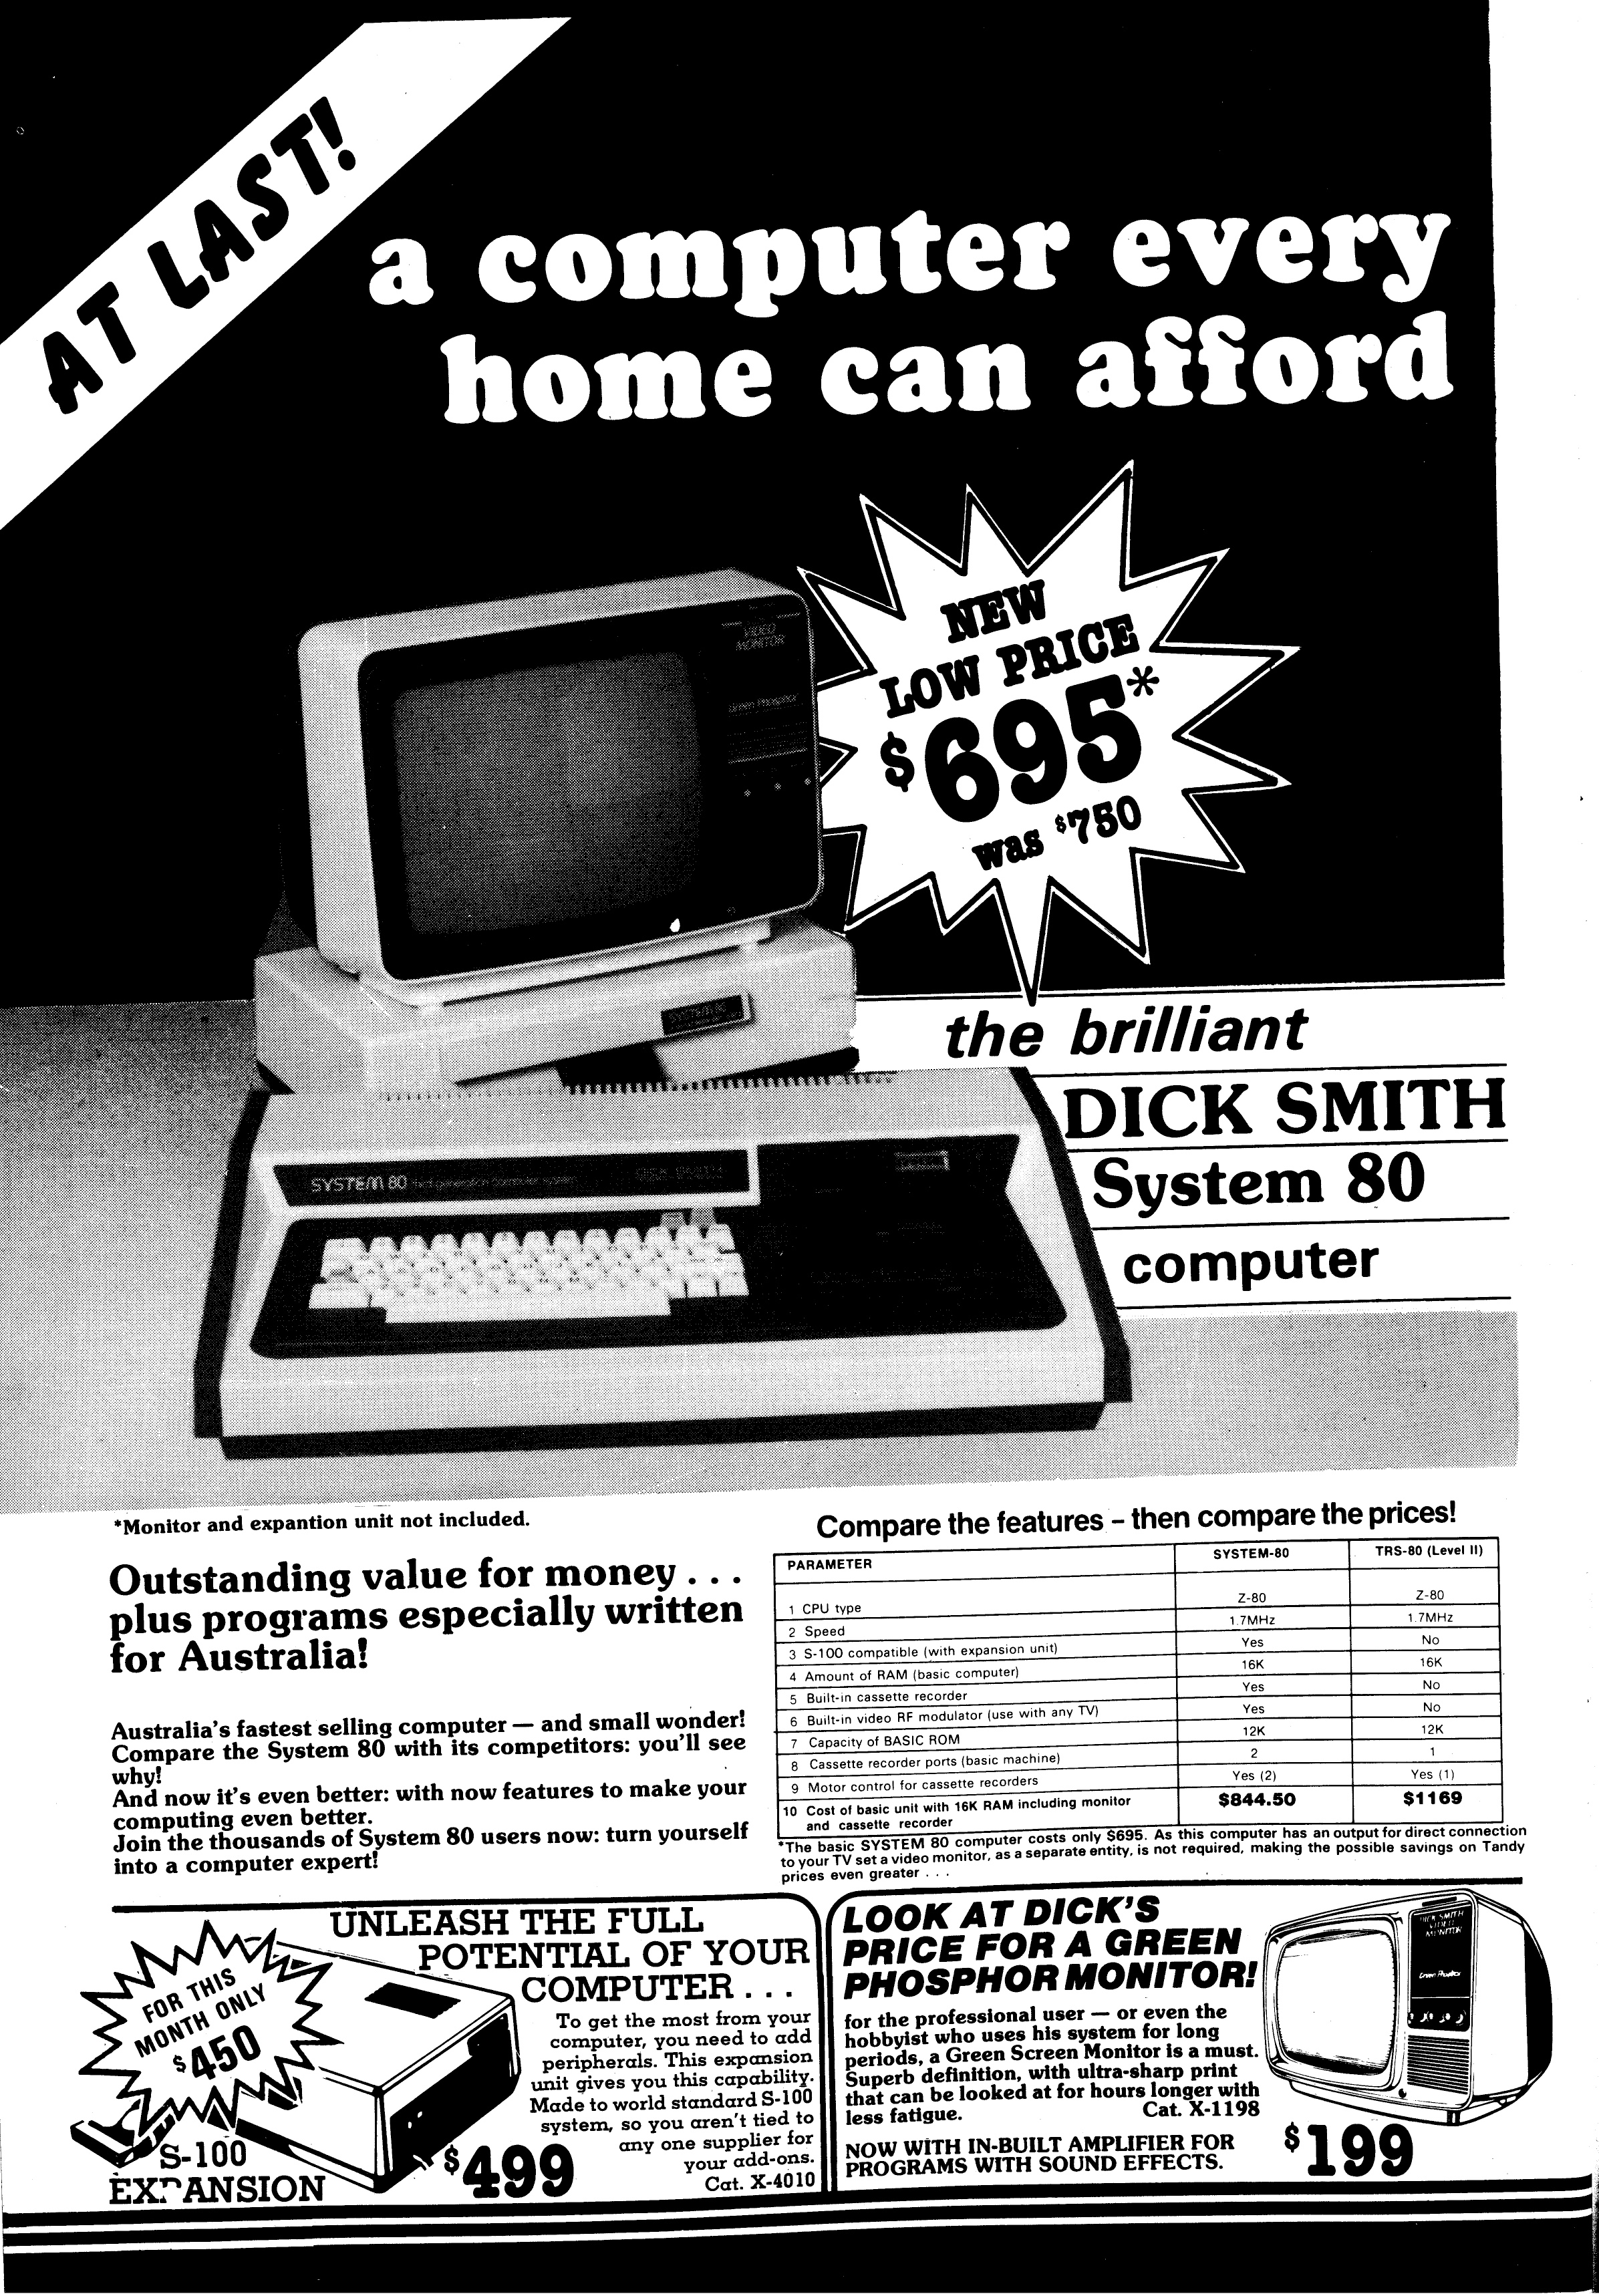 System 80 Resource Site - Advertising